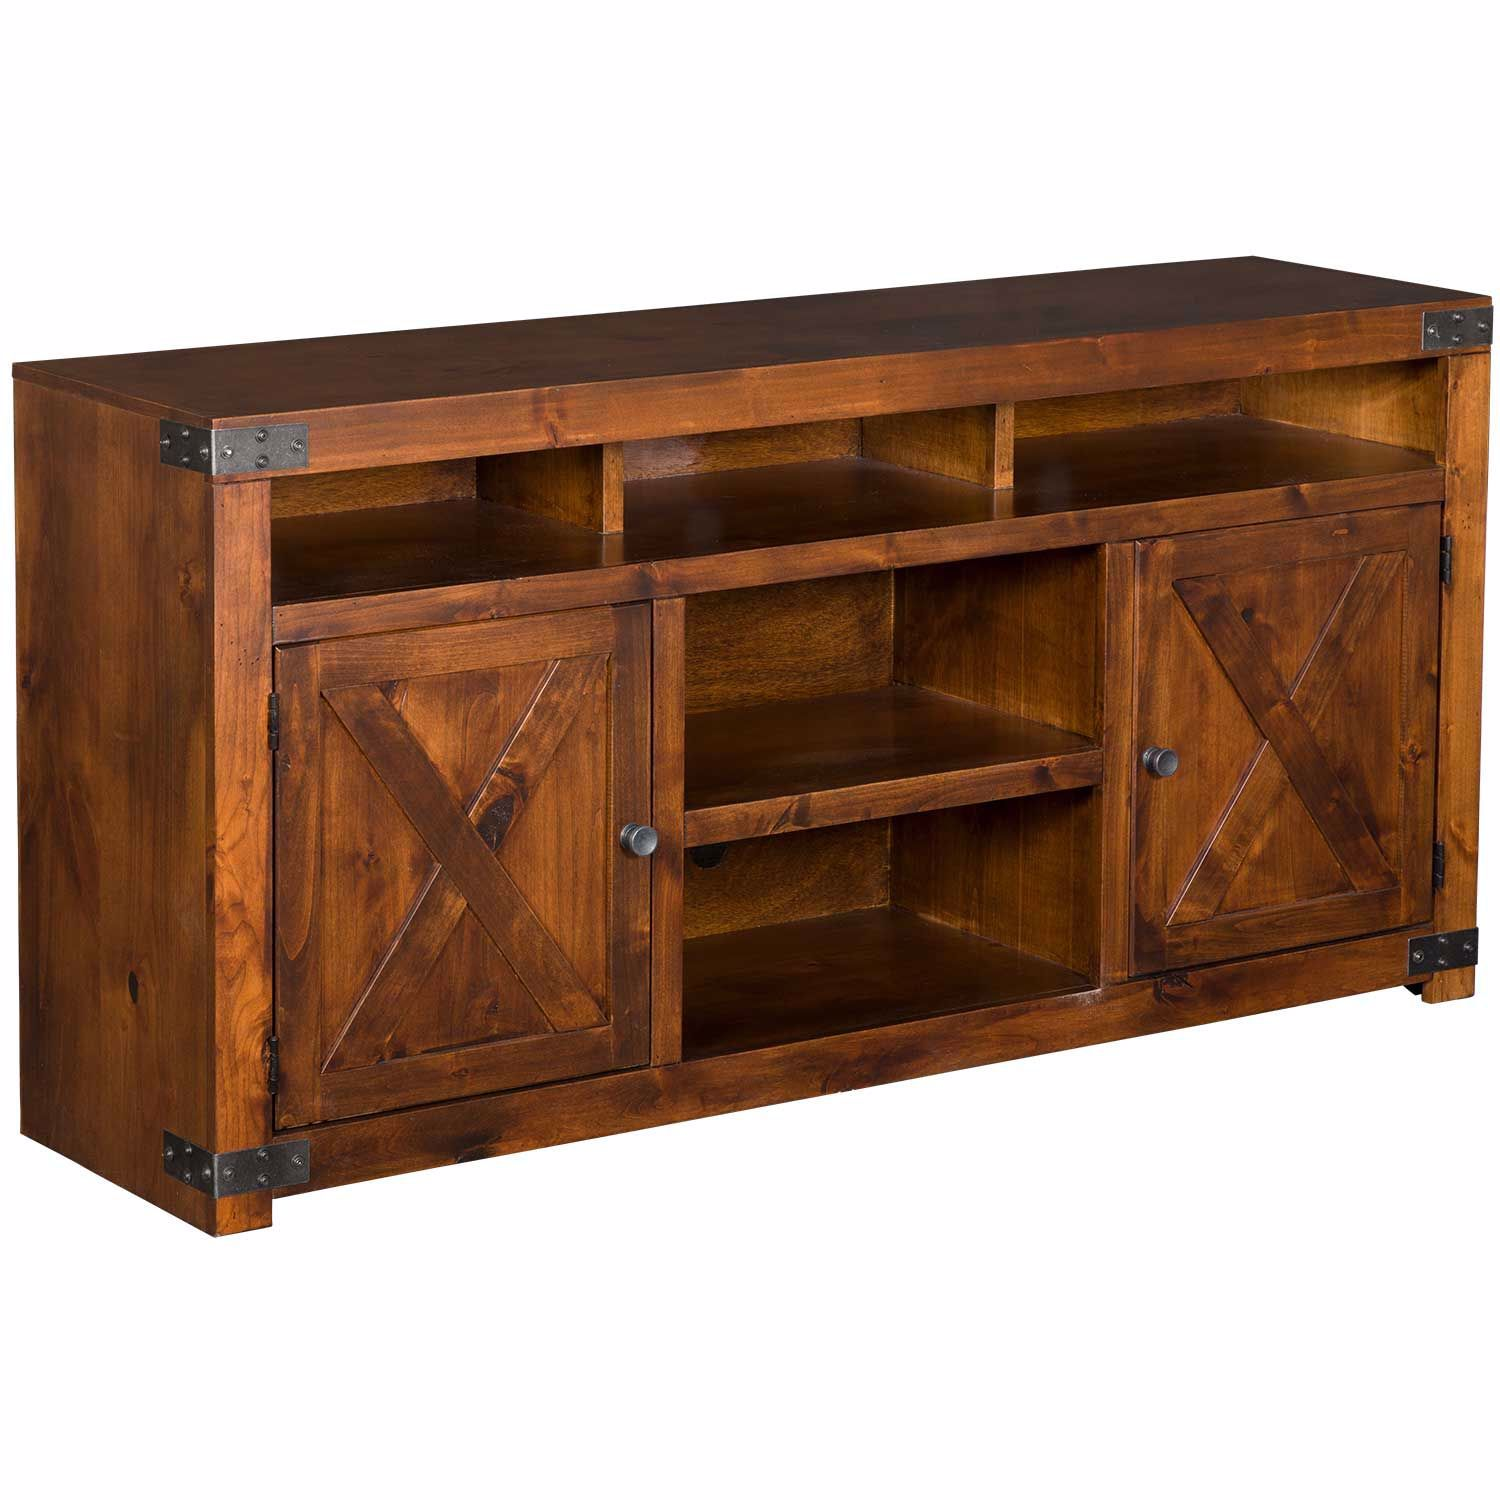 "Picture of Urban Farmhouse 65"" TV Console, Fruitwood"